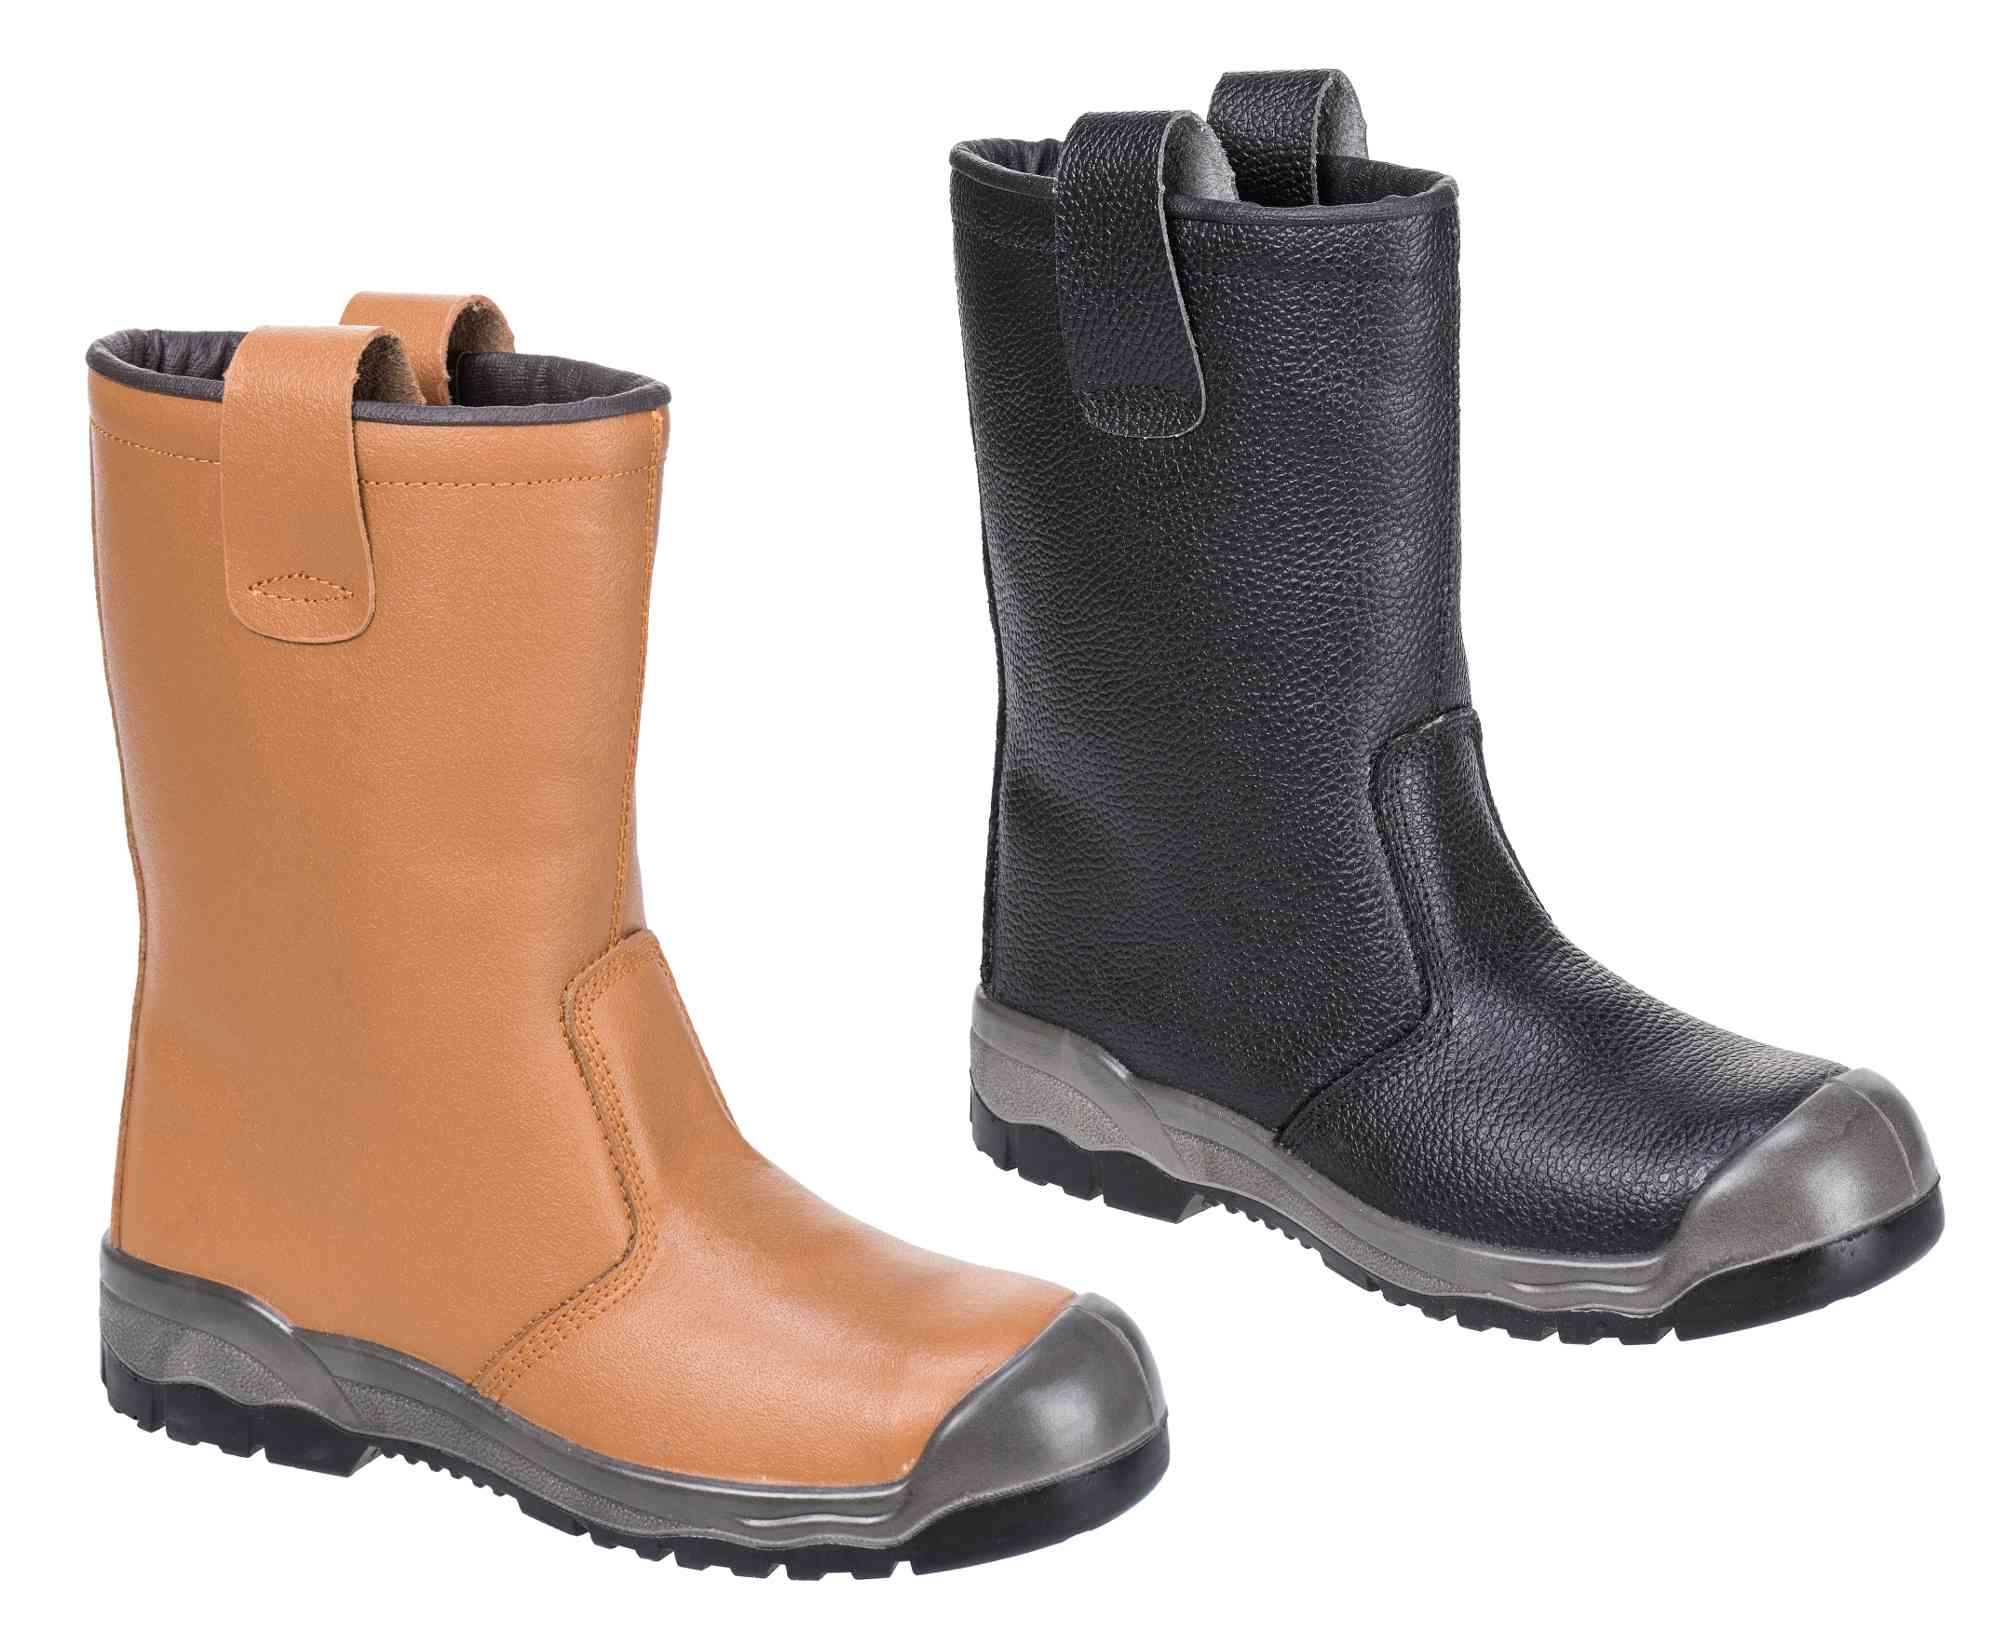 66e2a9ff8f3 Portwest FW13 Steelite Steel Toe Cap S1-P Fur Lined Safety Rigger Boots